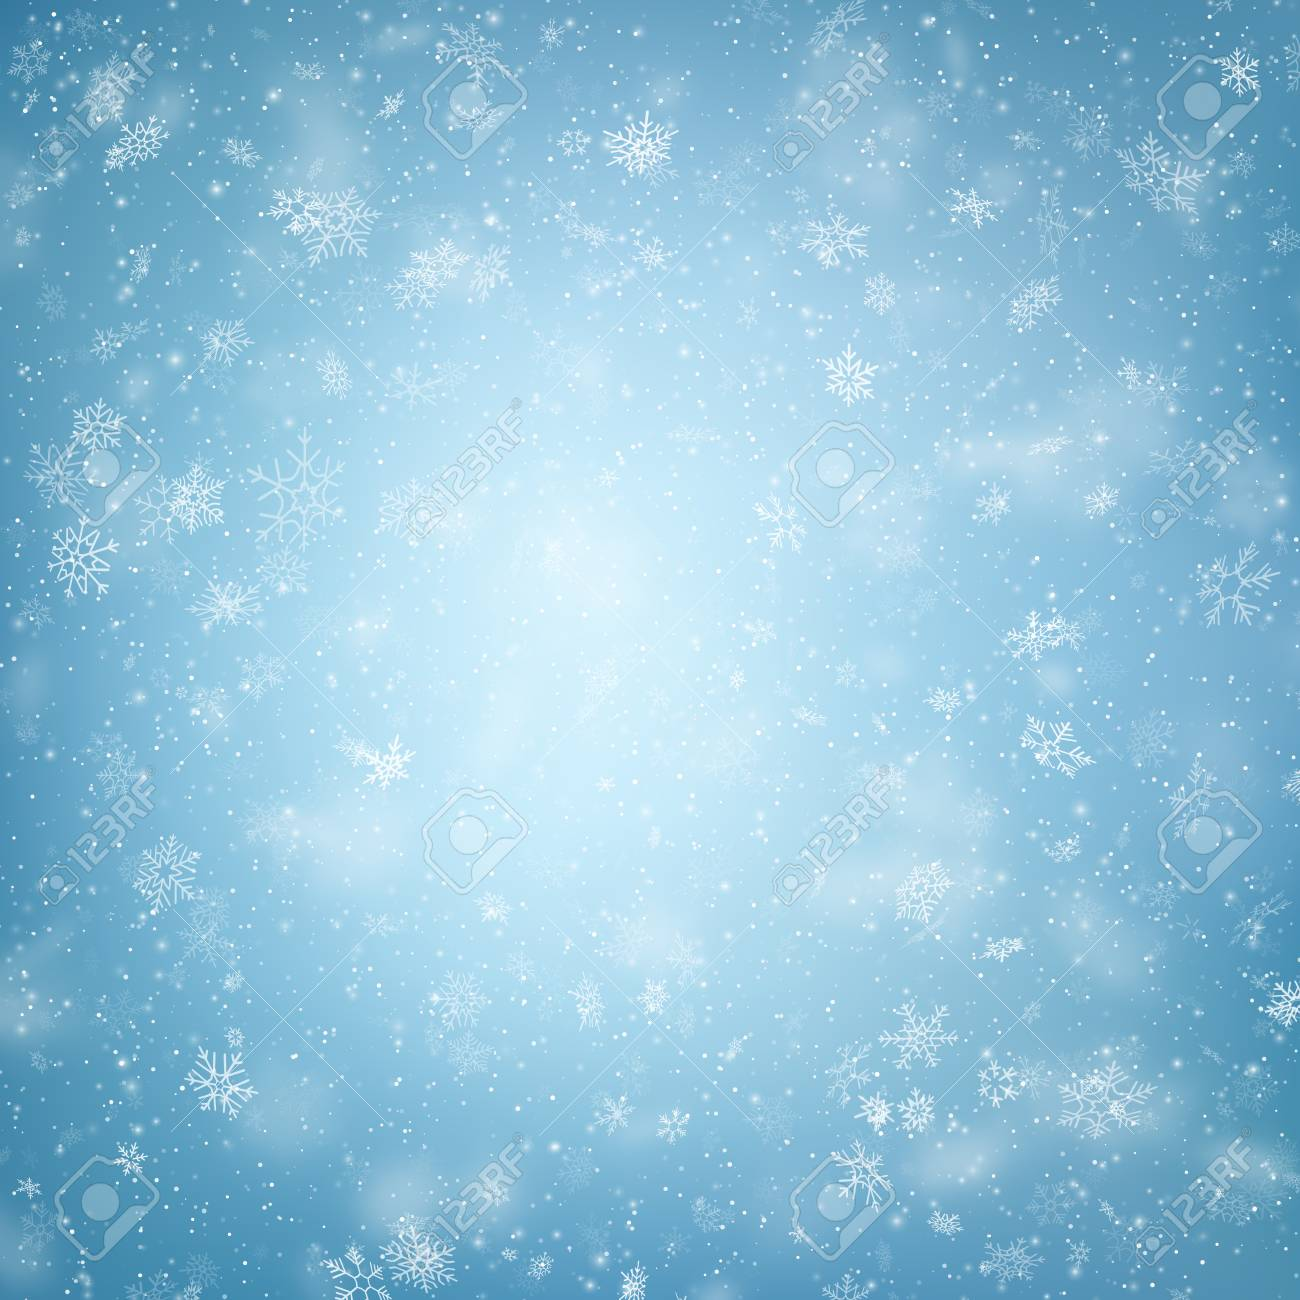 Blue Christmas snowflakes background. EPS 10 vector file - 126088289